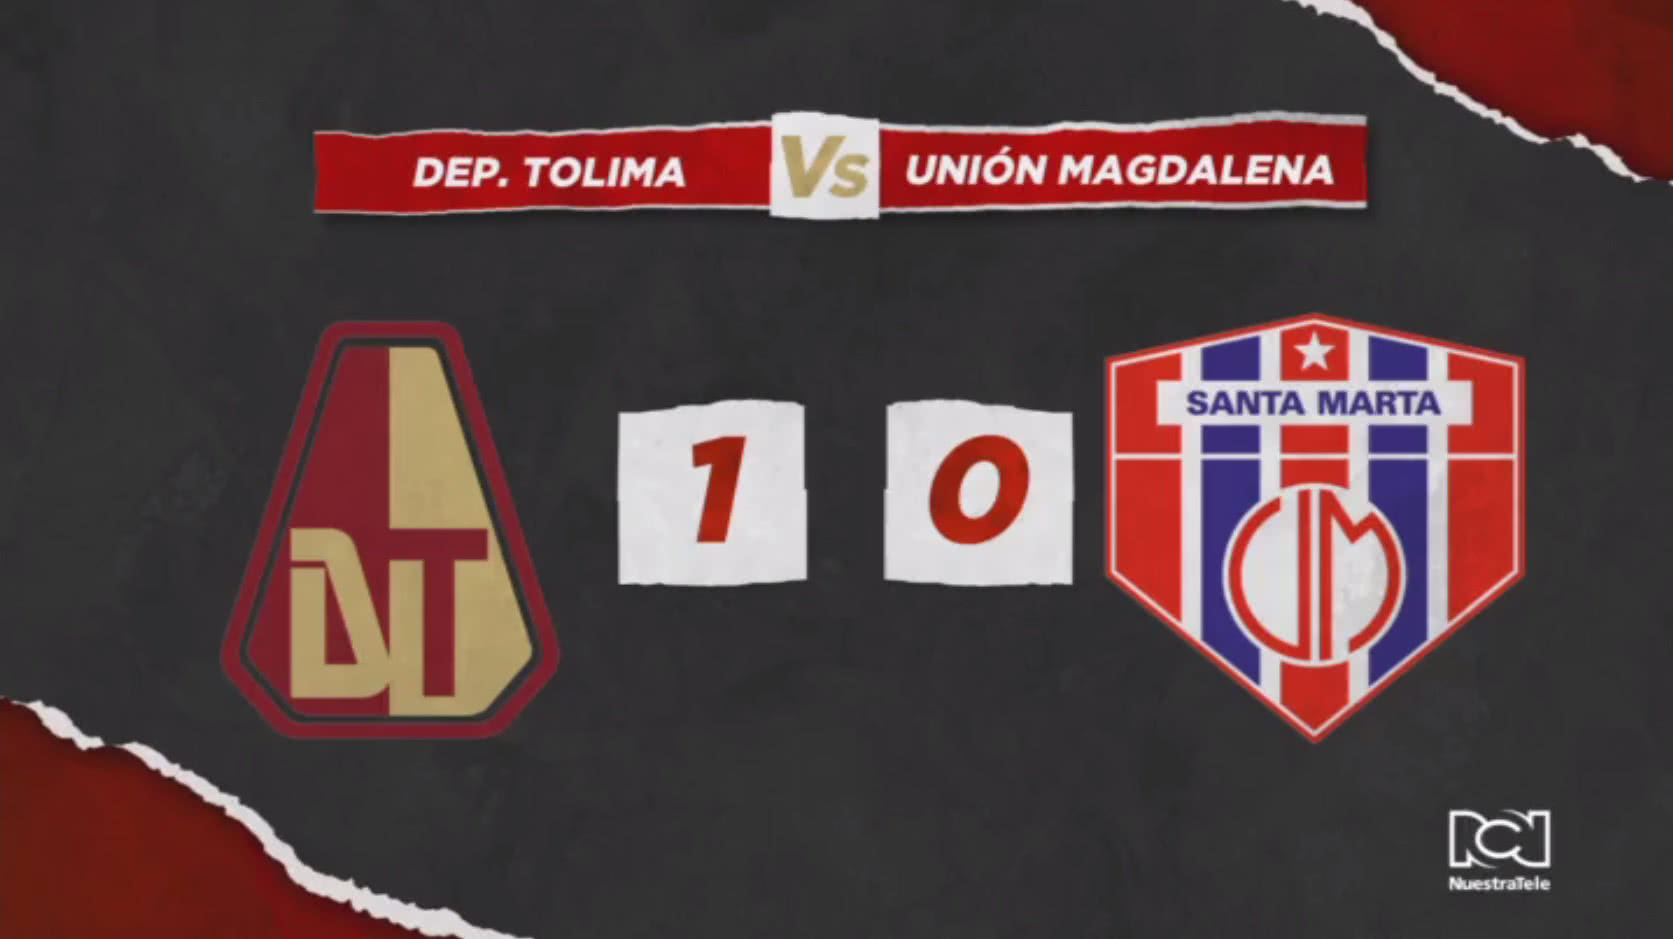 tolima-vs-union-magdalena.jpg